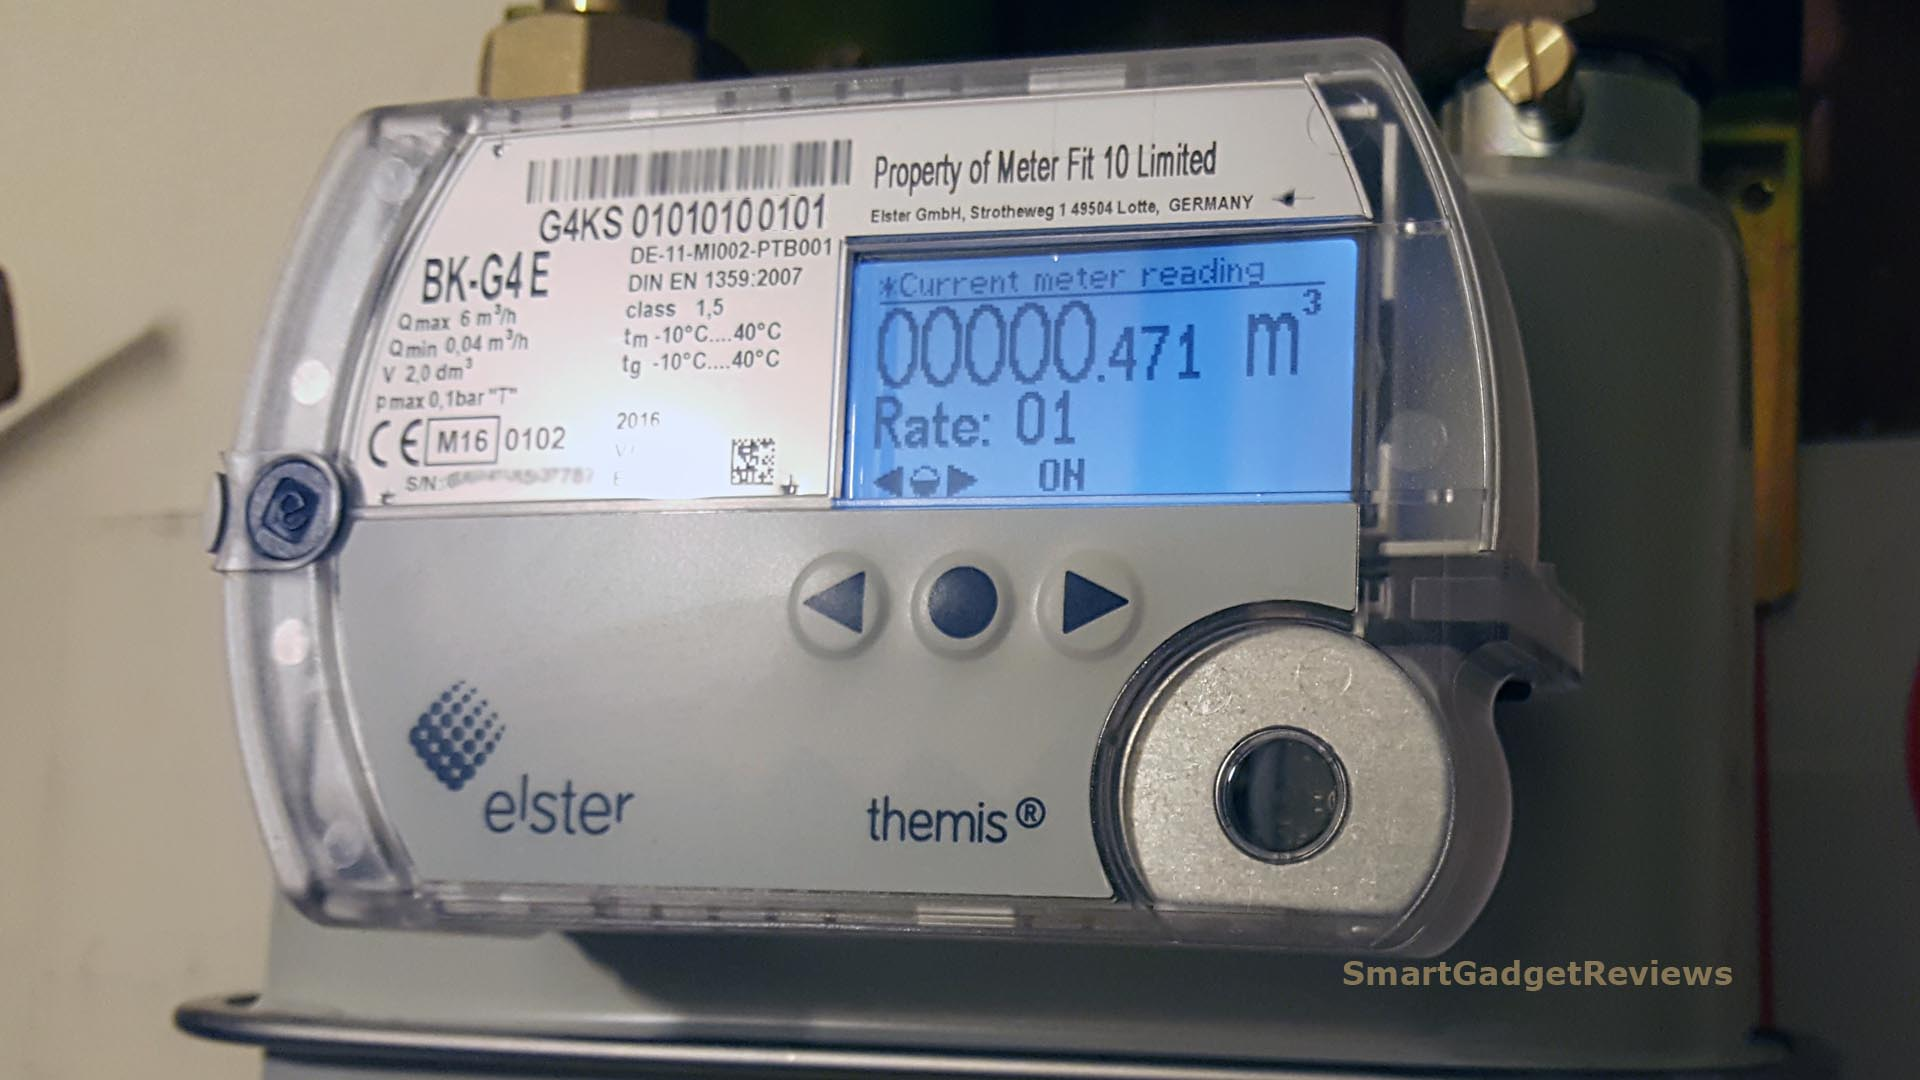 Smart meters allow for meter readings to automatically be sent direct to the Energy supplier, so you don't have to read your meter, ending estimated bills.